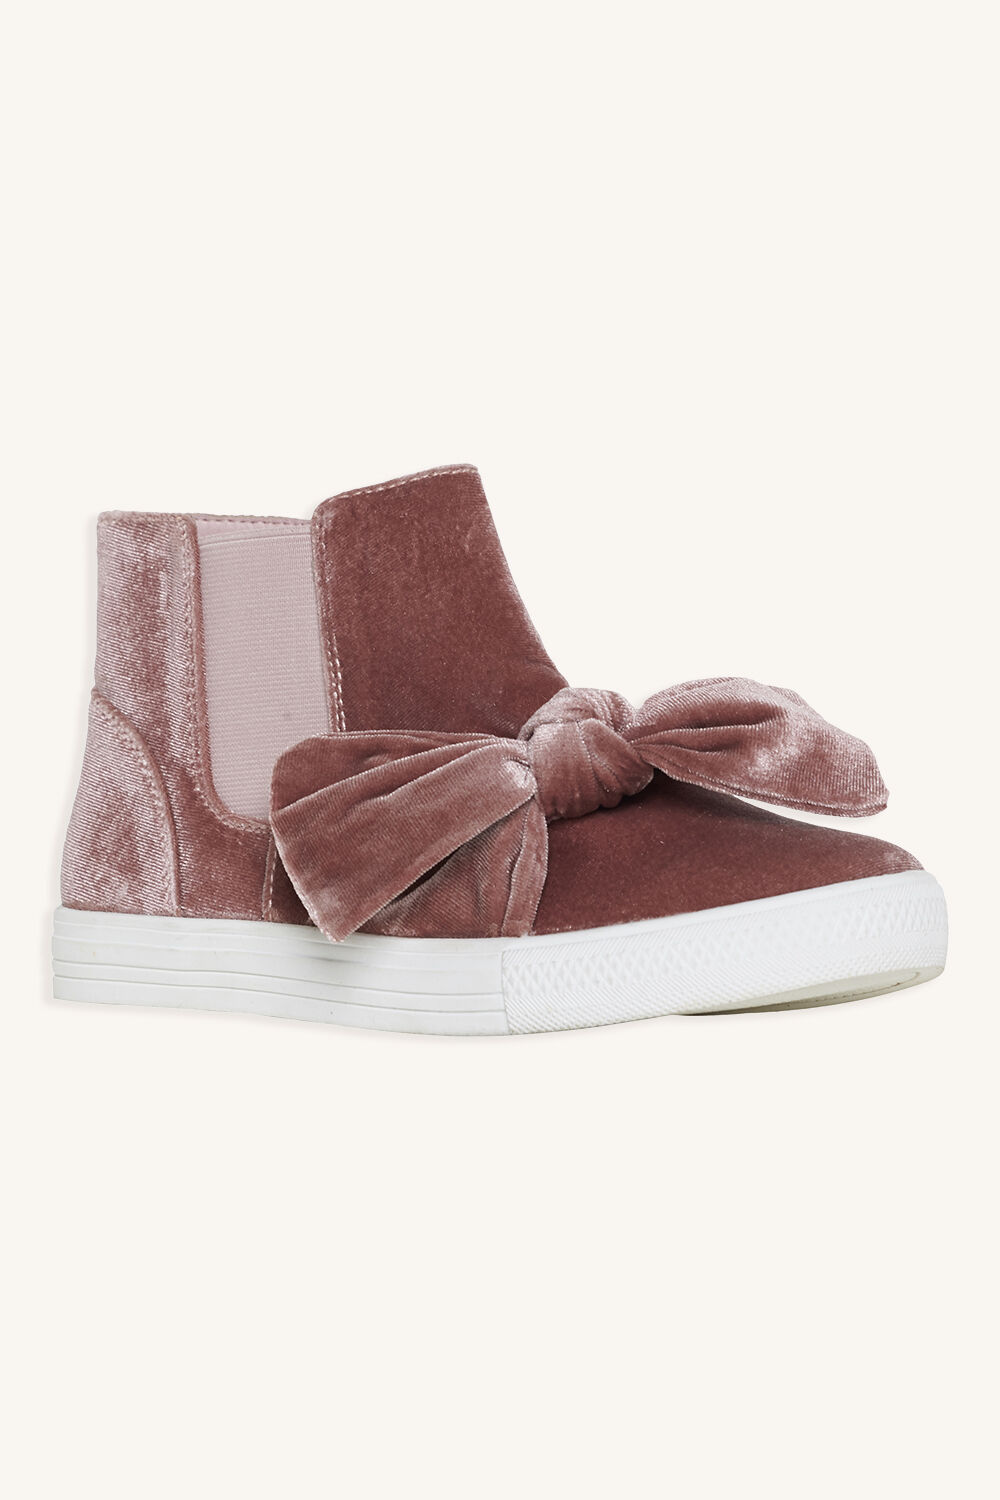 VELVET KNOT BOW ANKLE BOOT in colour DUSTY PINK